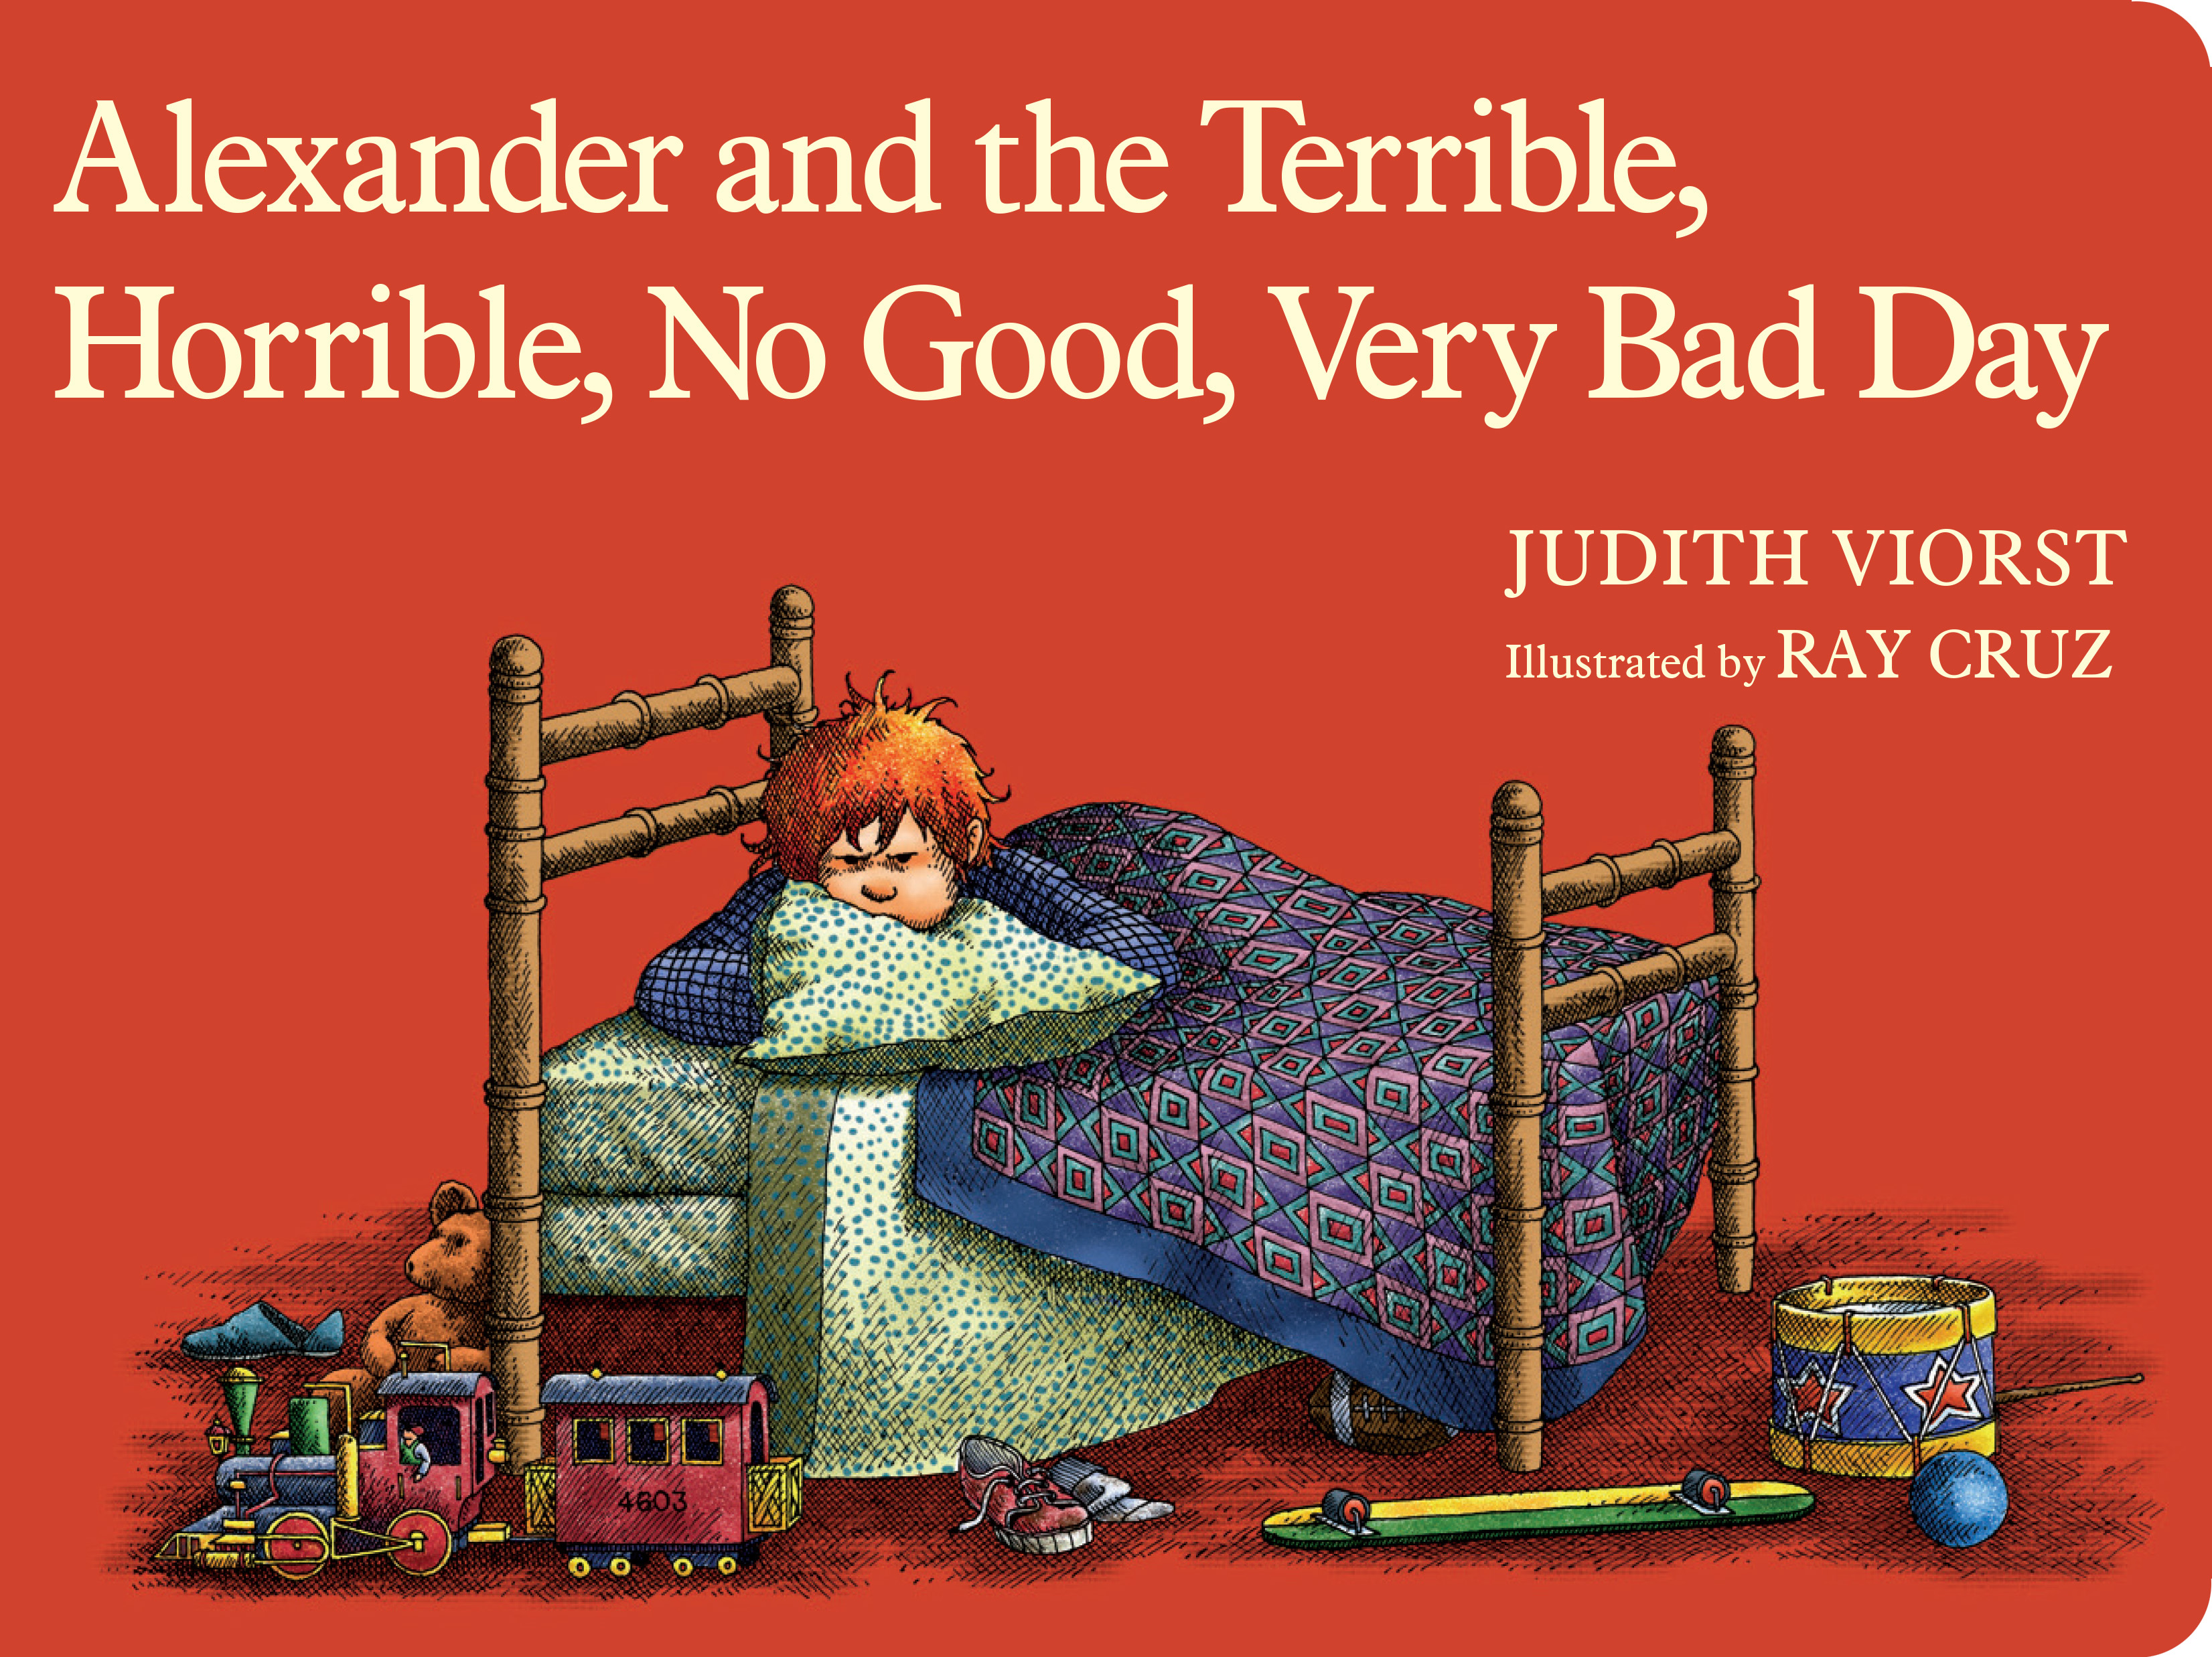 Alexander-and-the-terrible-horrible-no-good-9781481414128_hr